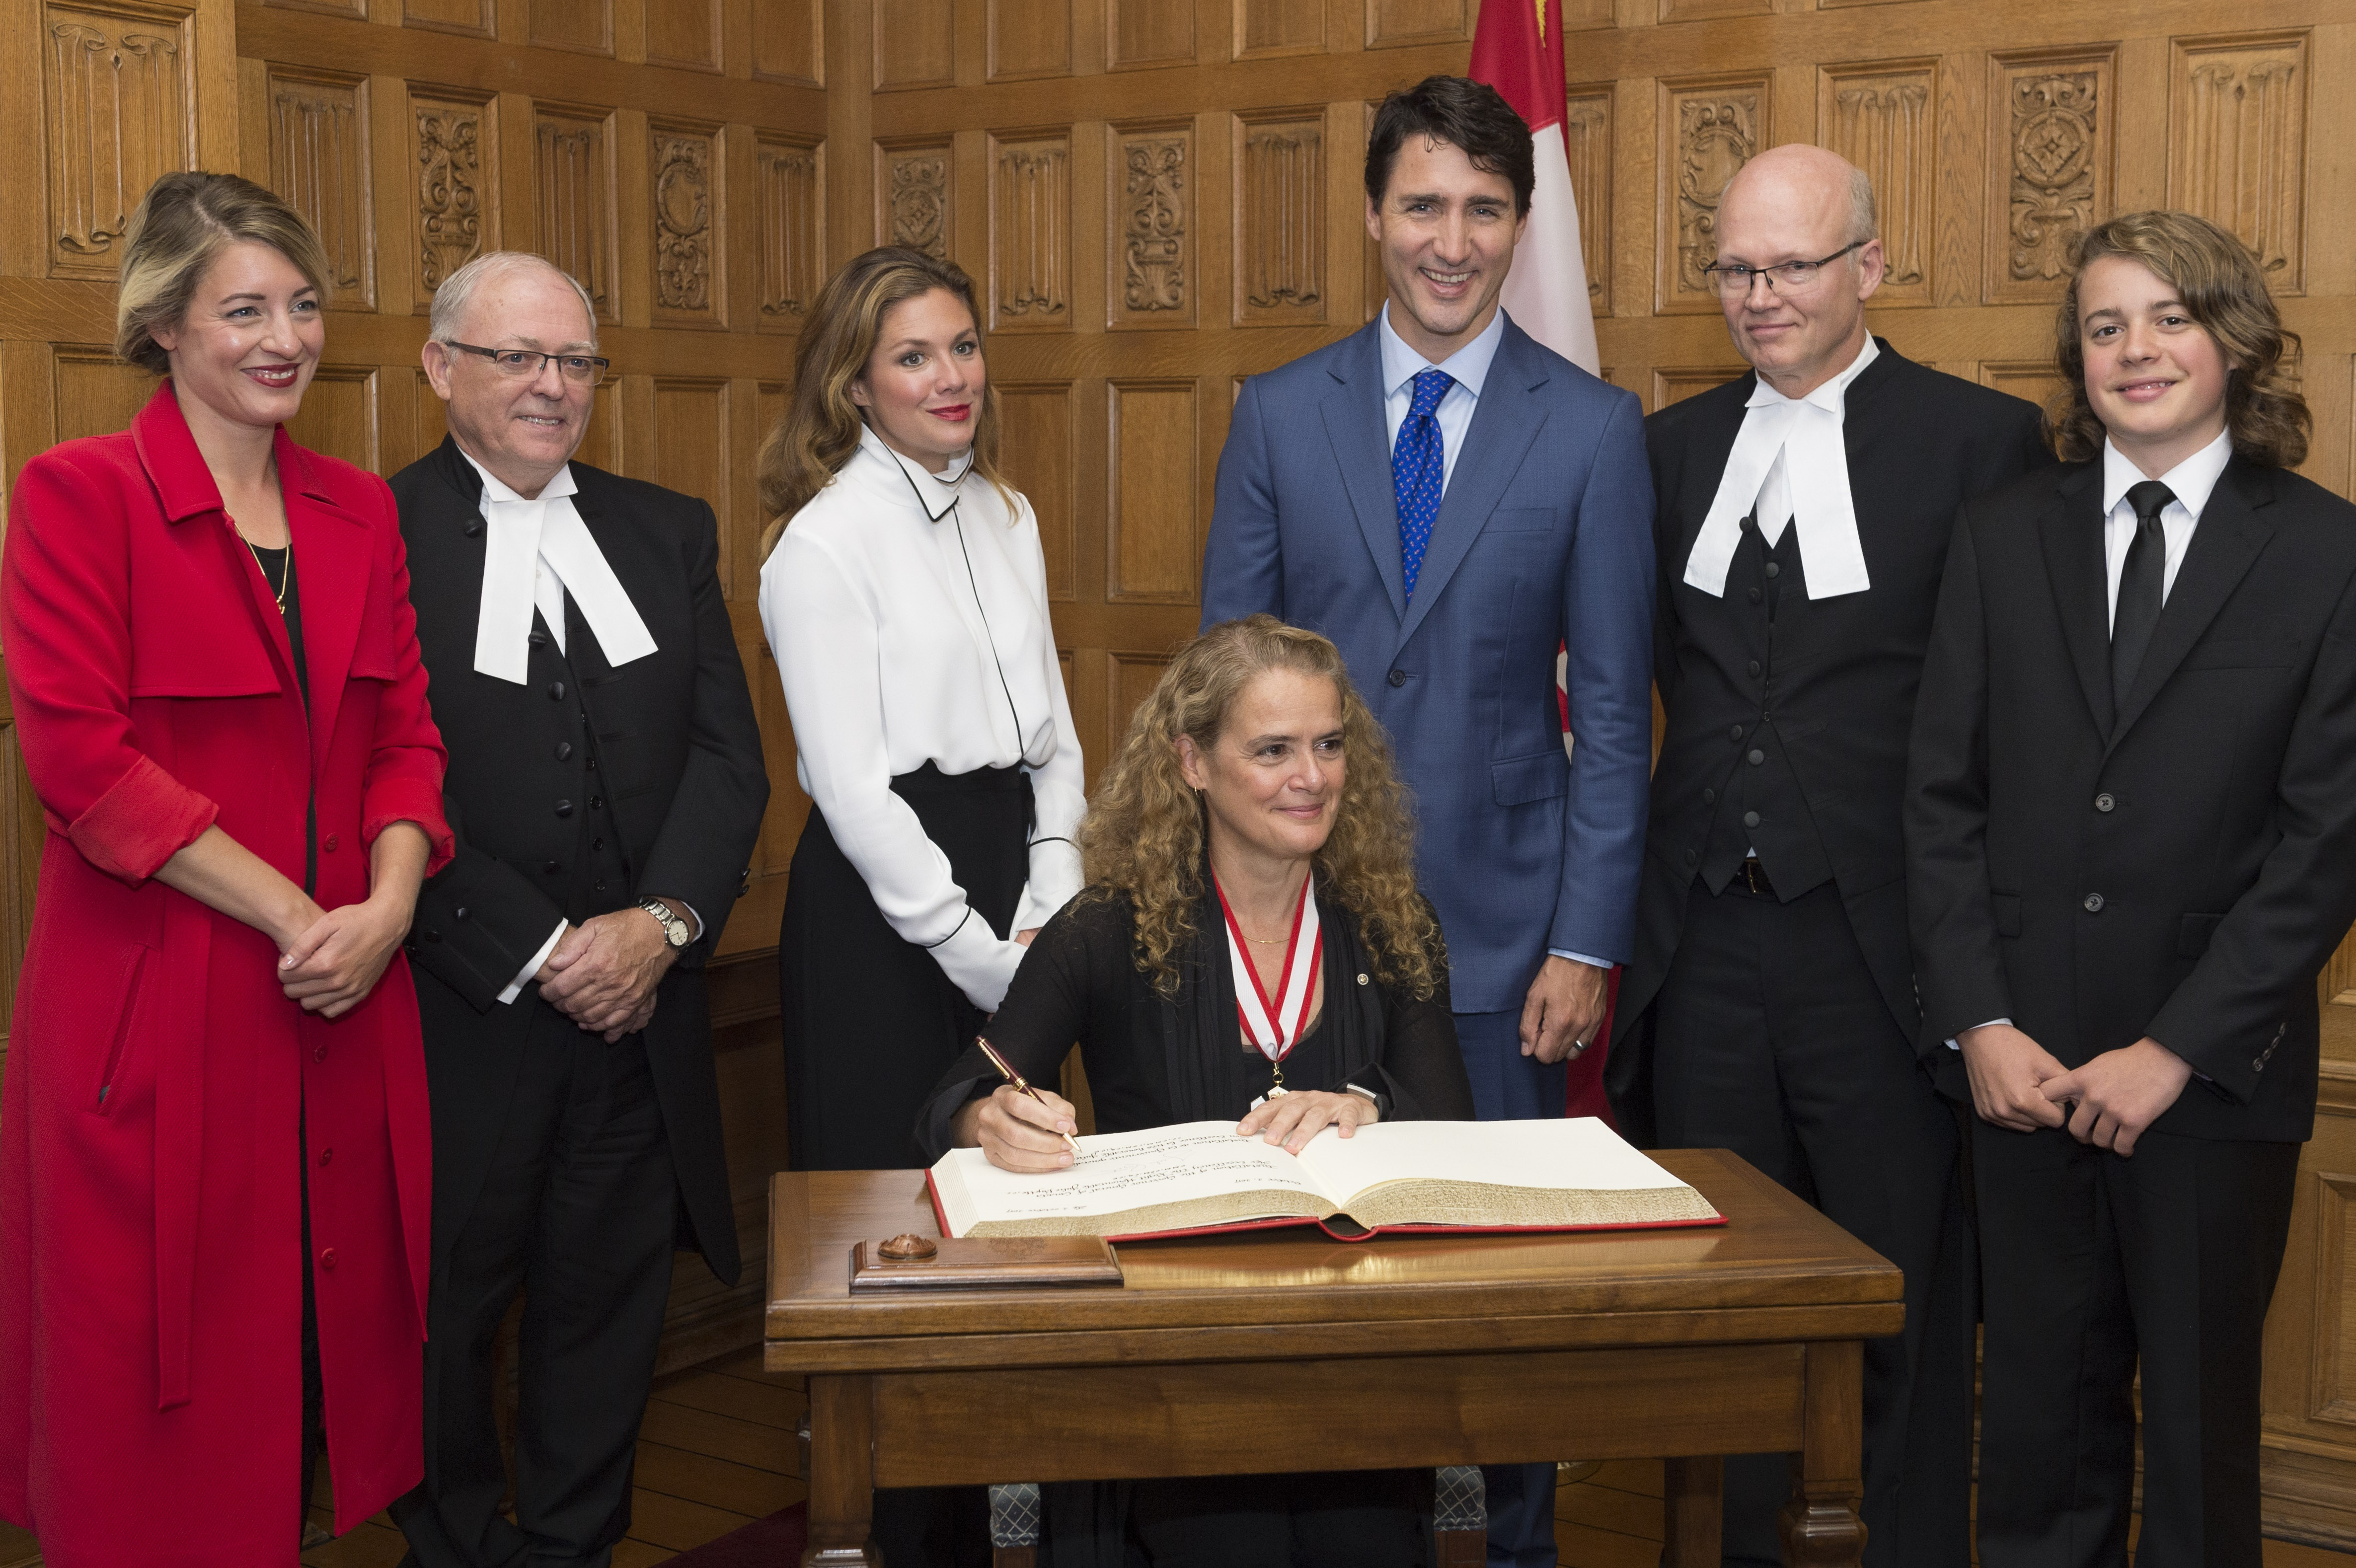 The Governor General signed the proclamation marking her accession.